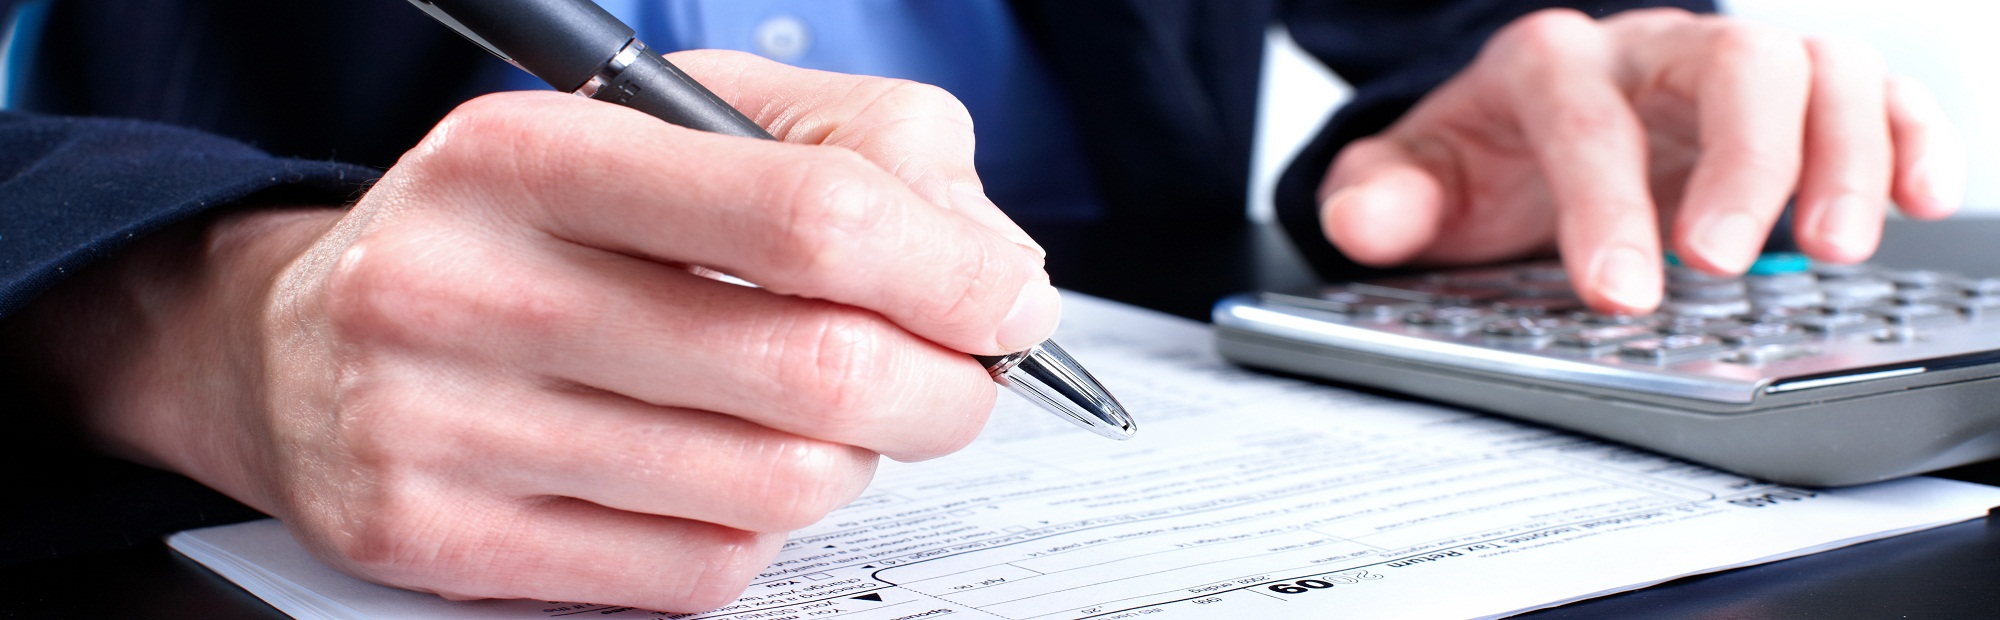 Optimal Tax Services for Individuals and Businesses